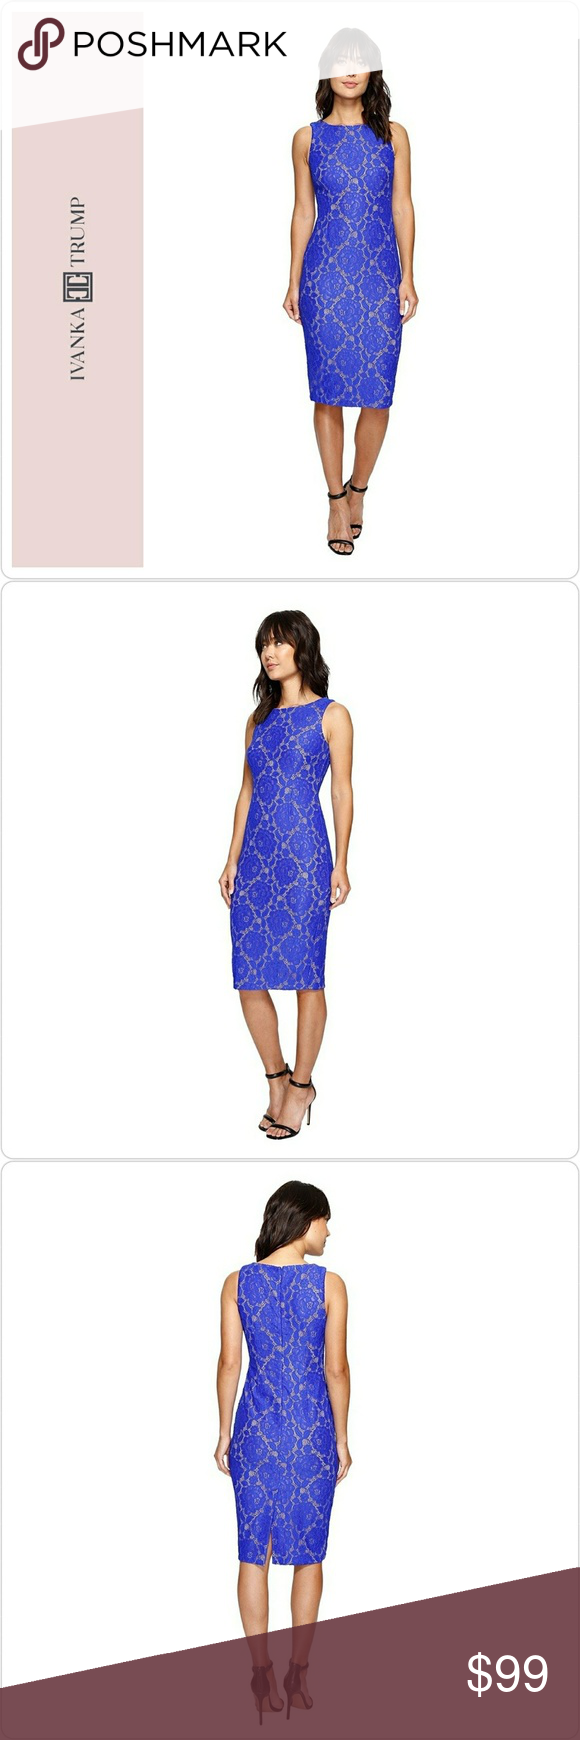 Lace below knee dress  Ivanka Trump Deep Sea Blue Lace Sheath Dress Brand Ivanka Trump